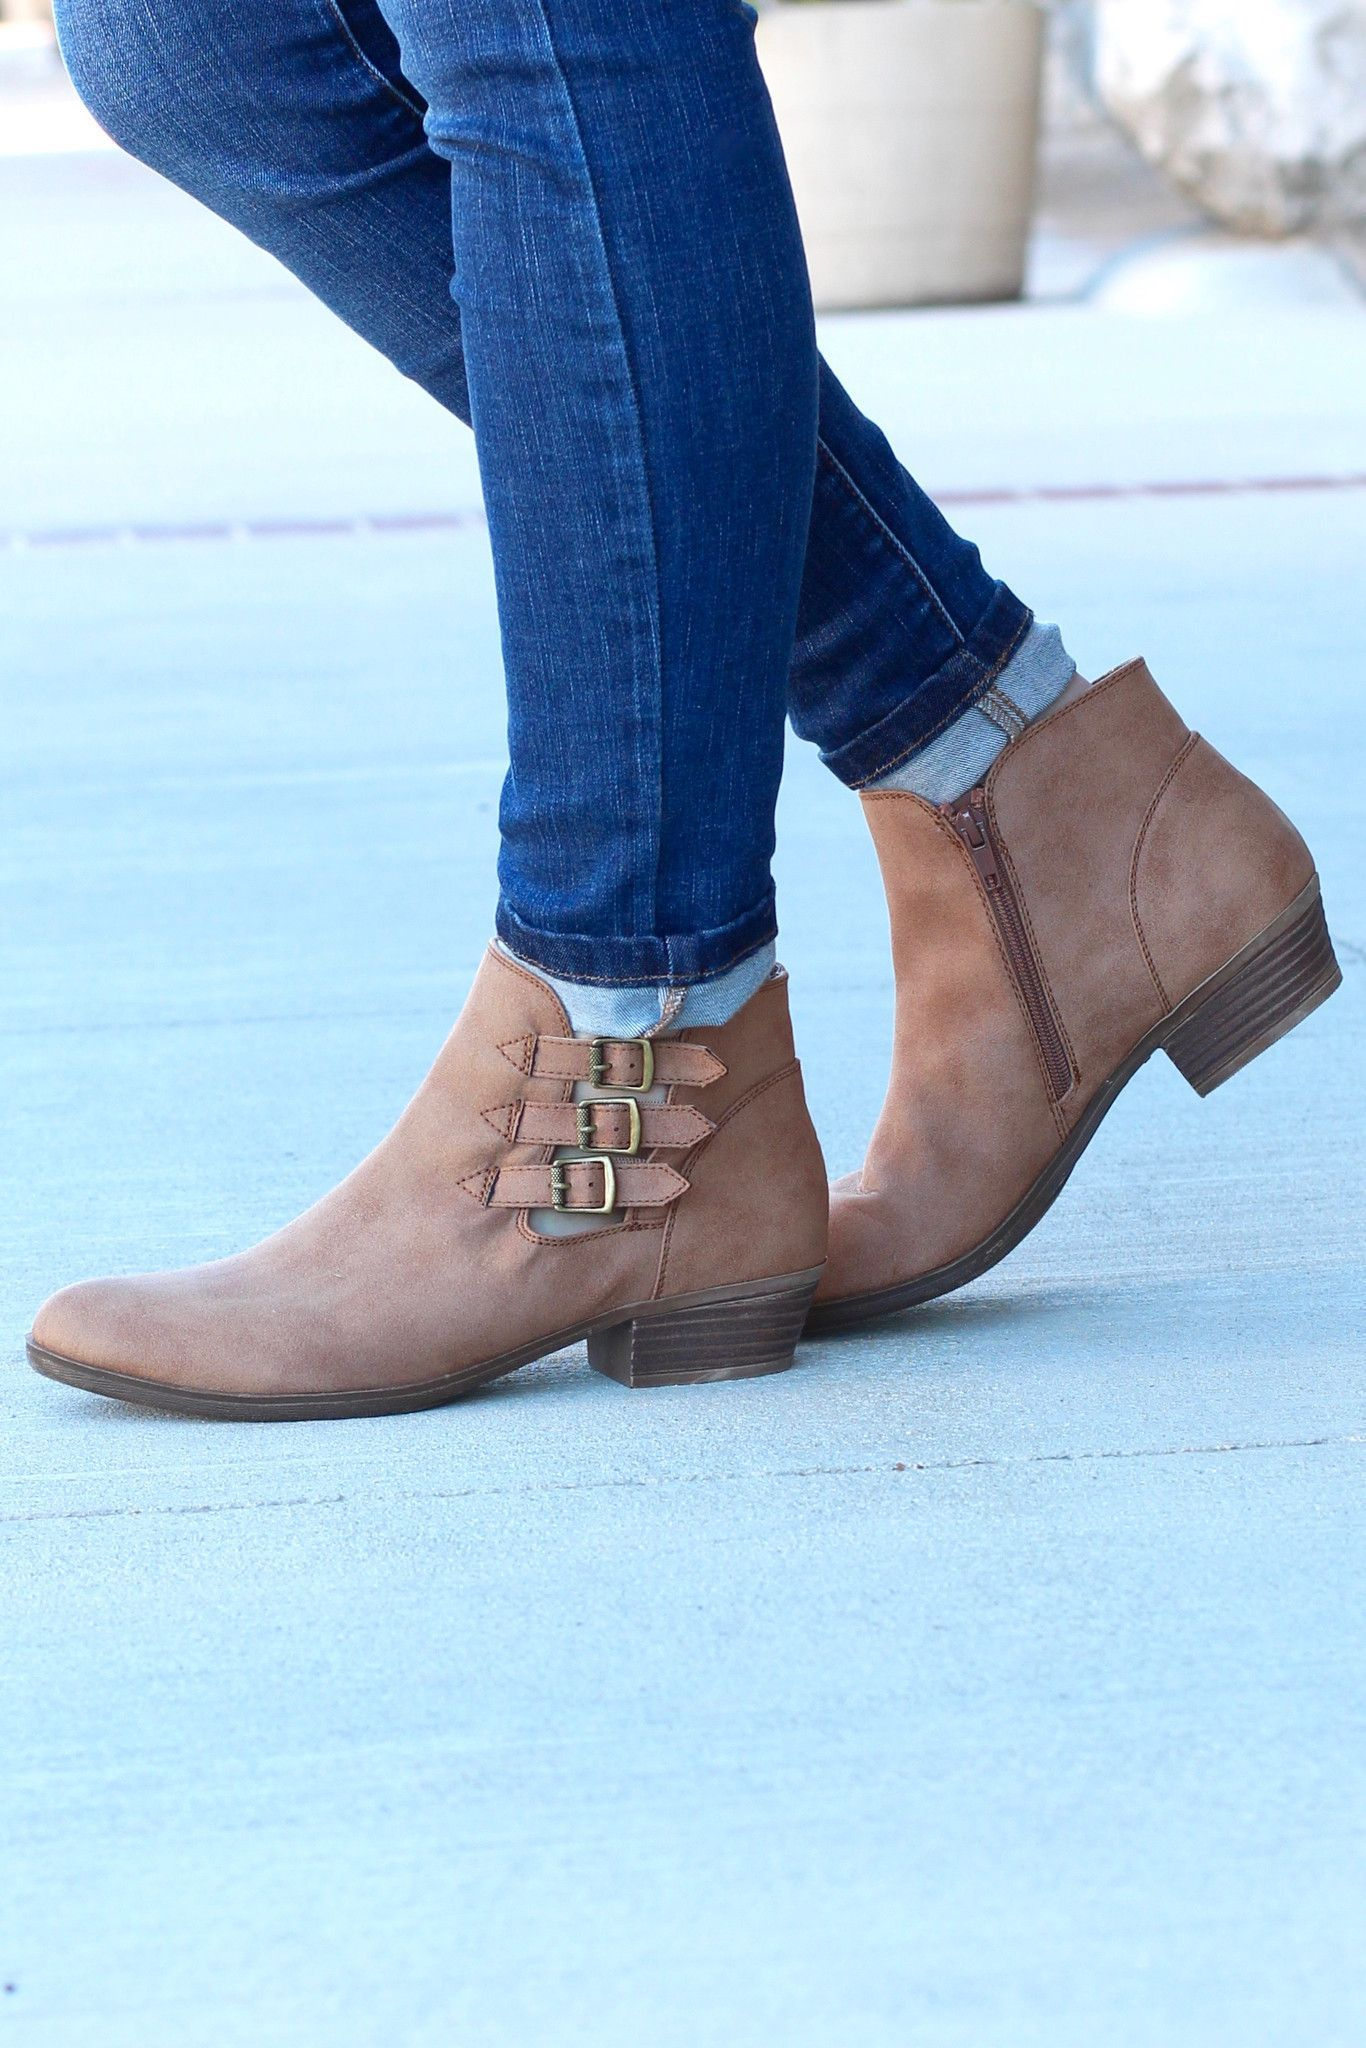 d7c891425434 Cute ankle booties featuring 3 buckles on the outside. Almond toe. Inner  zipper for easy off on. Small